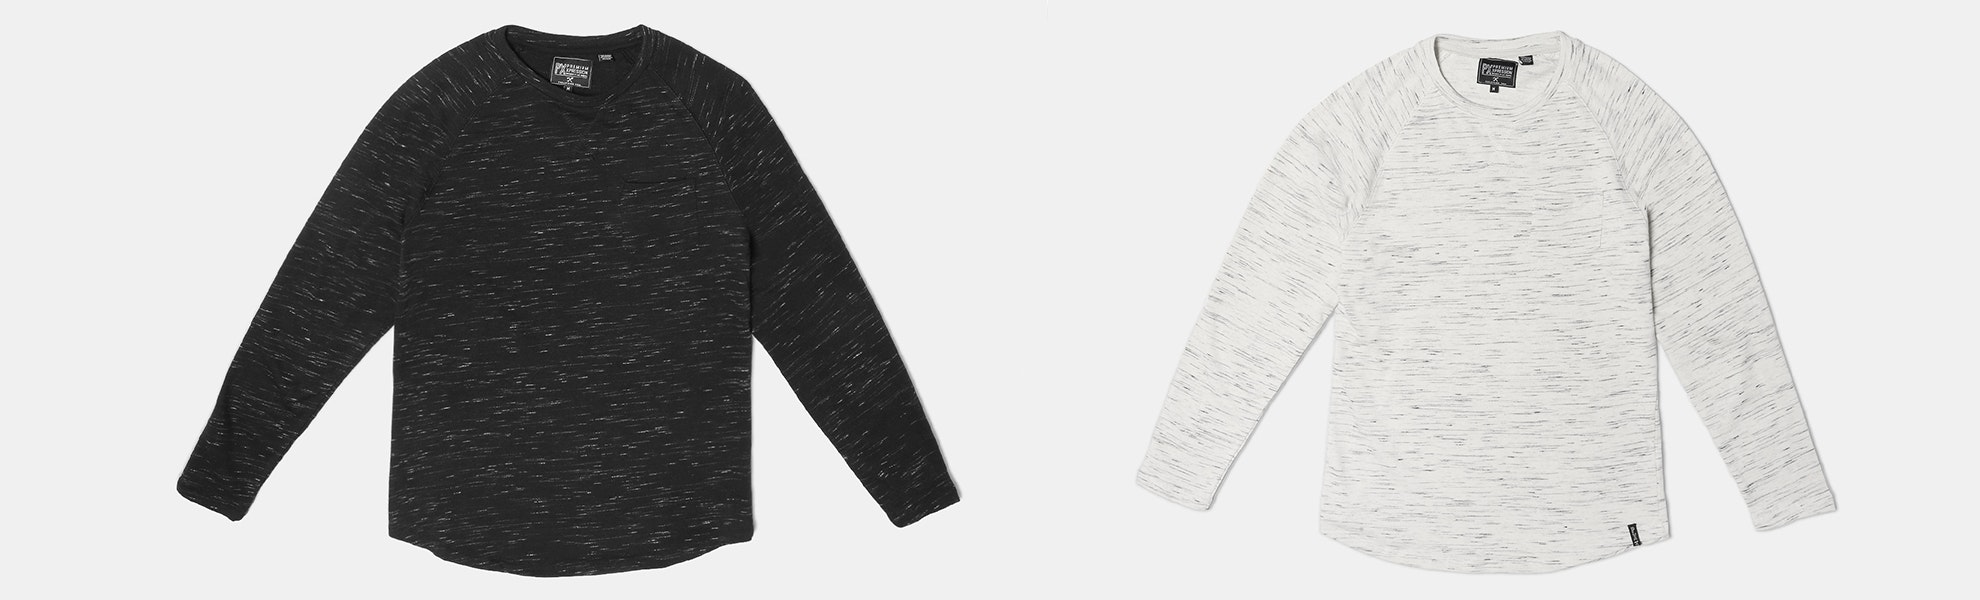 PX Clothing Asher Curved-Hem Pullover